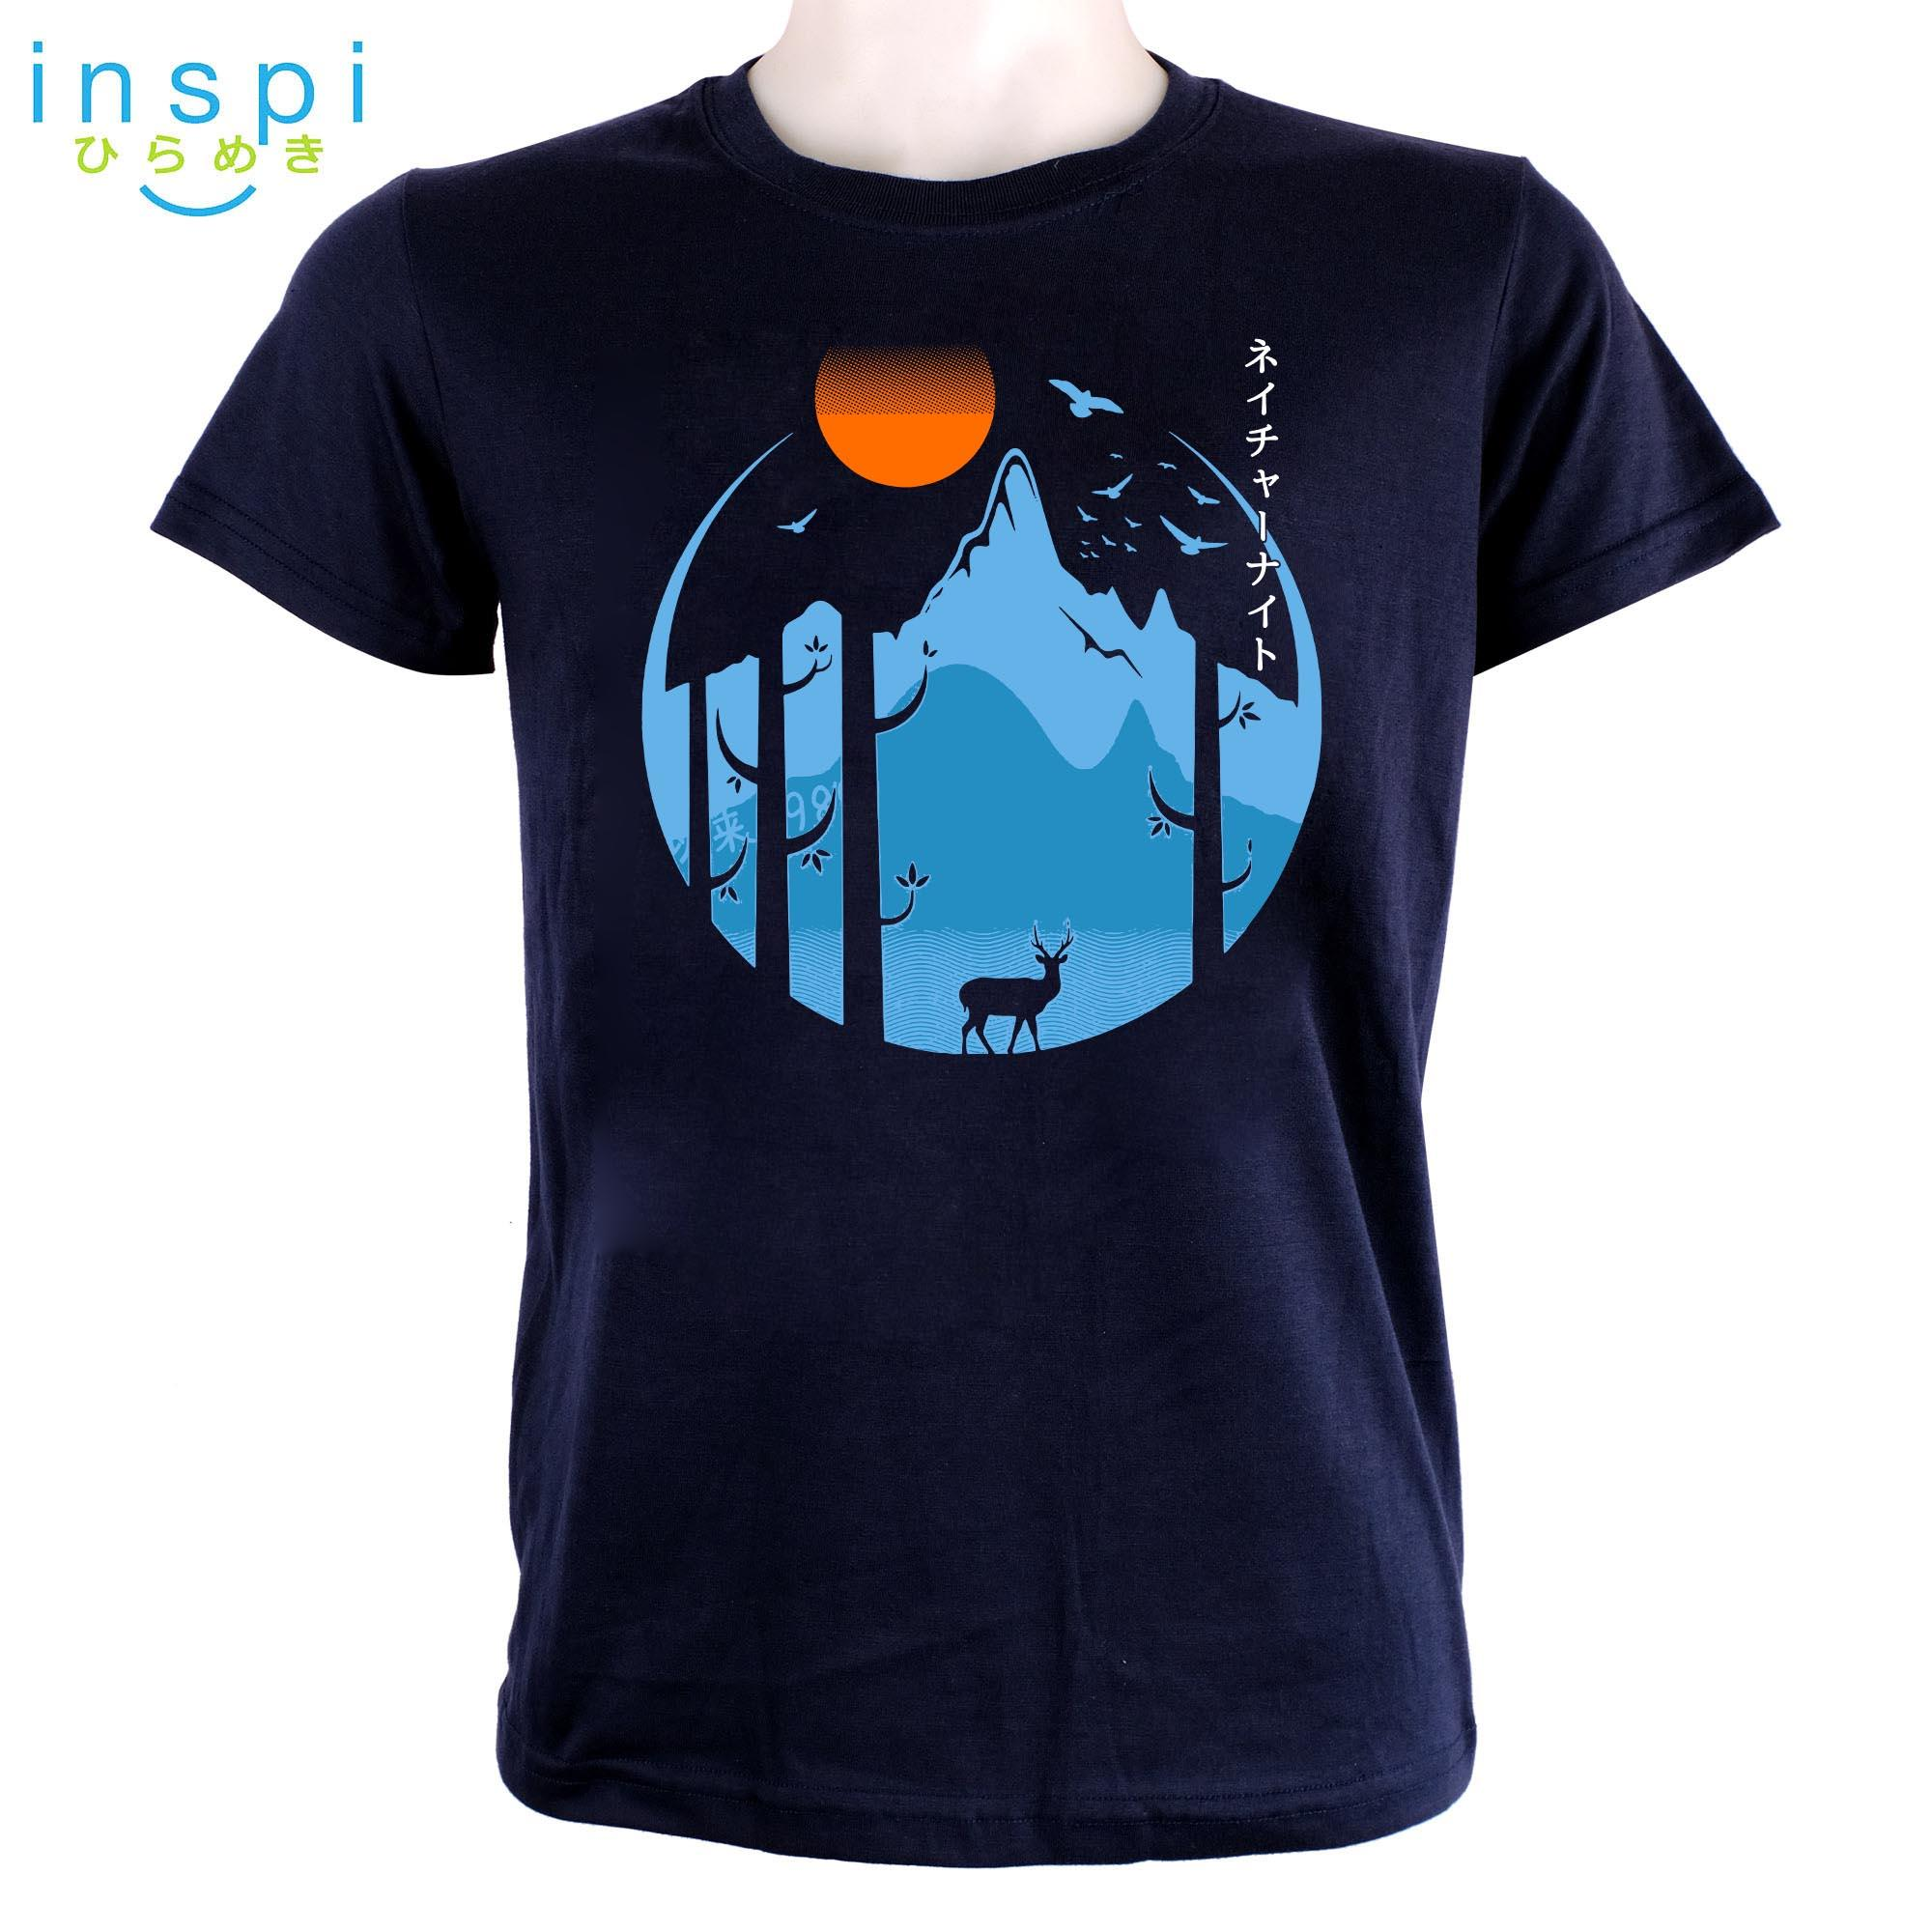 11318bbb2ba4 INSPI Tees Nature Evening (Navy Blue) tshirt printed graphic tee Mens t  shirt shirts